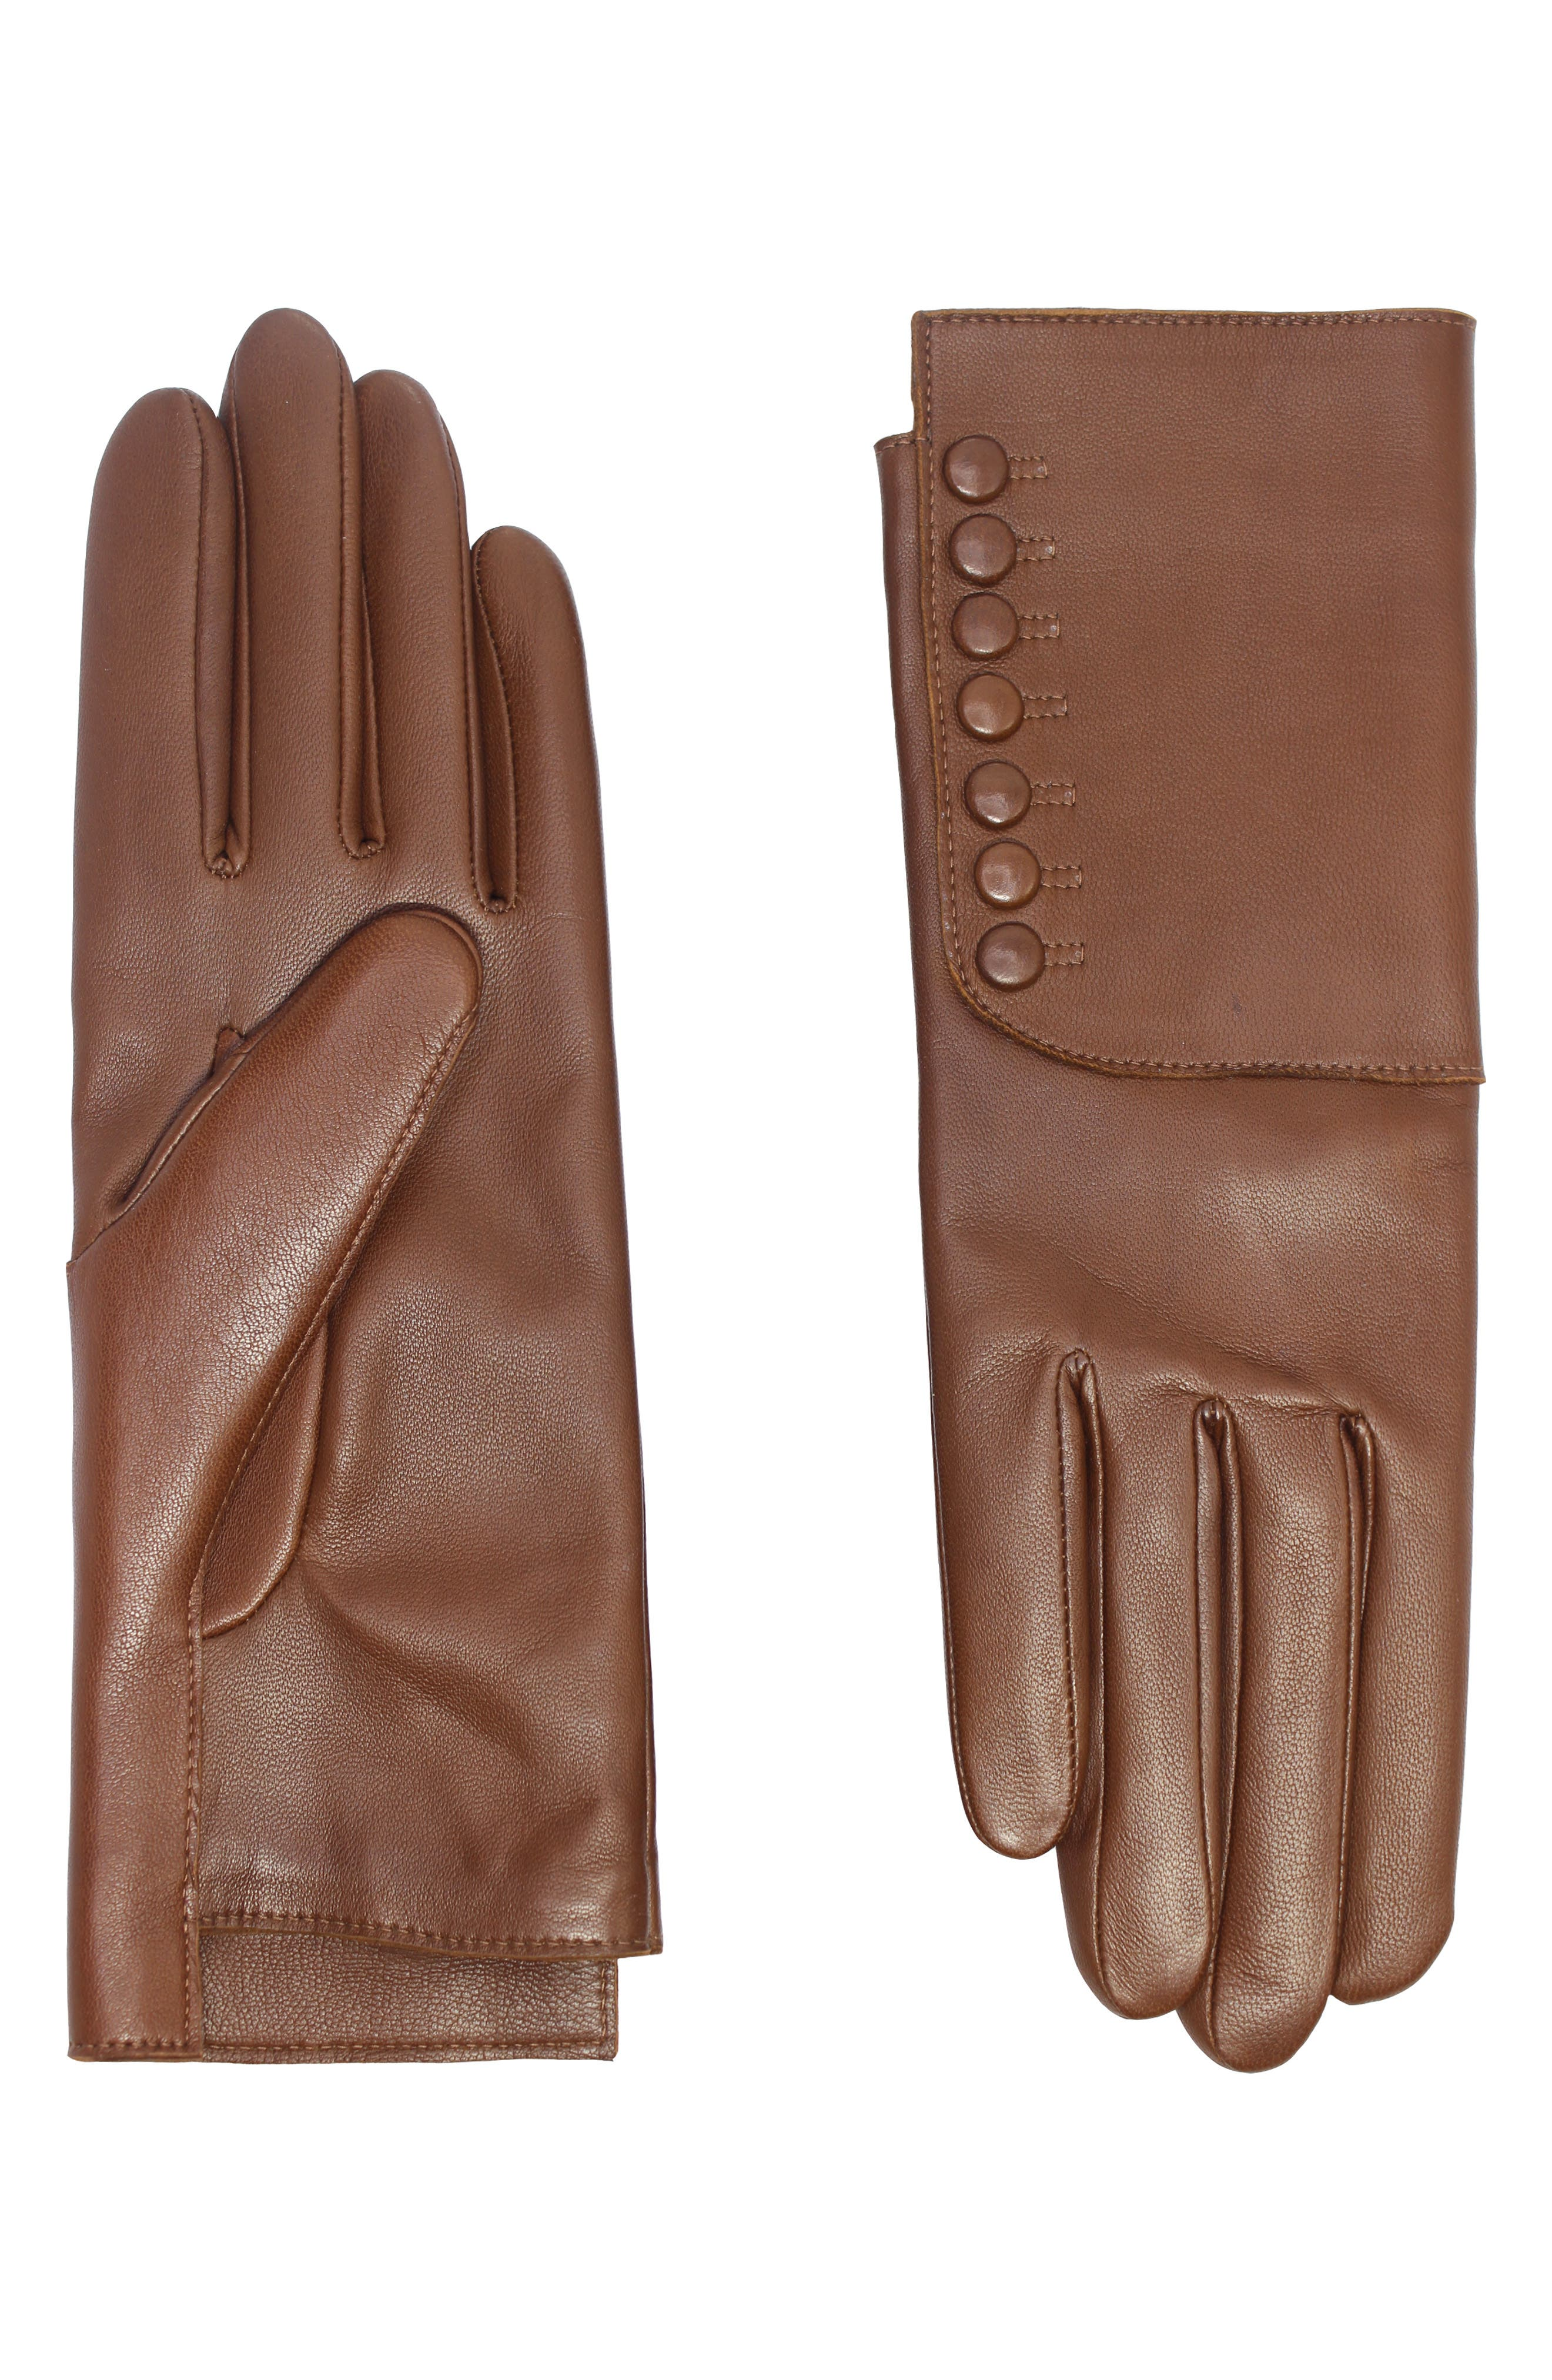 Edwardian Gloves, Handbags, Hair Combs, Wigs Womens Agnelle Rachelle Snaps Lambskin Leather Gloves $185.00 AT vintagedancer.com